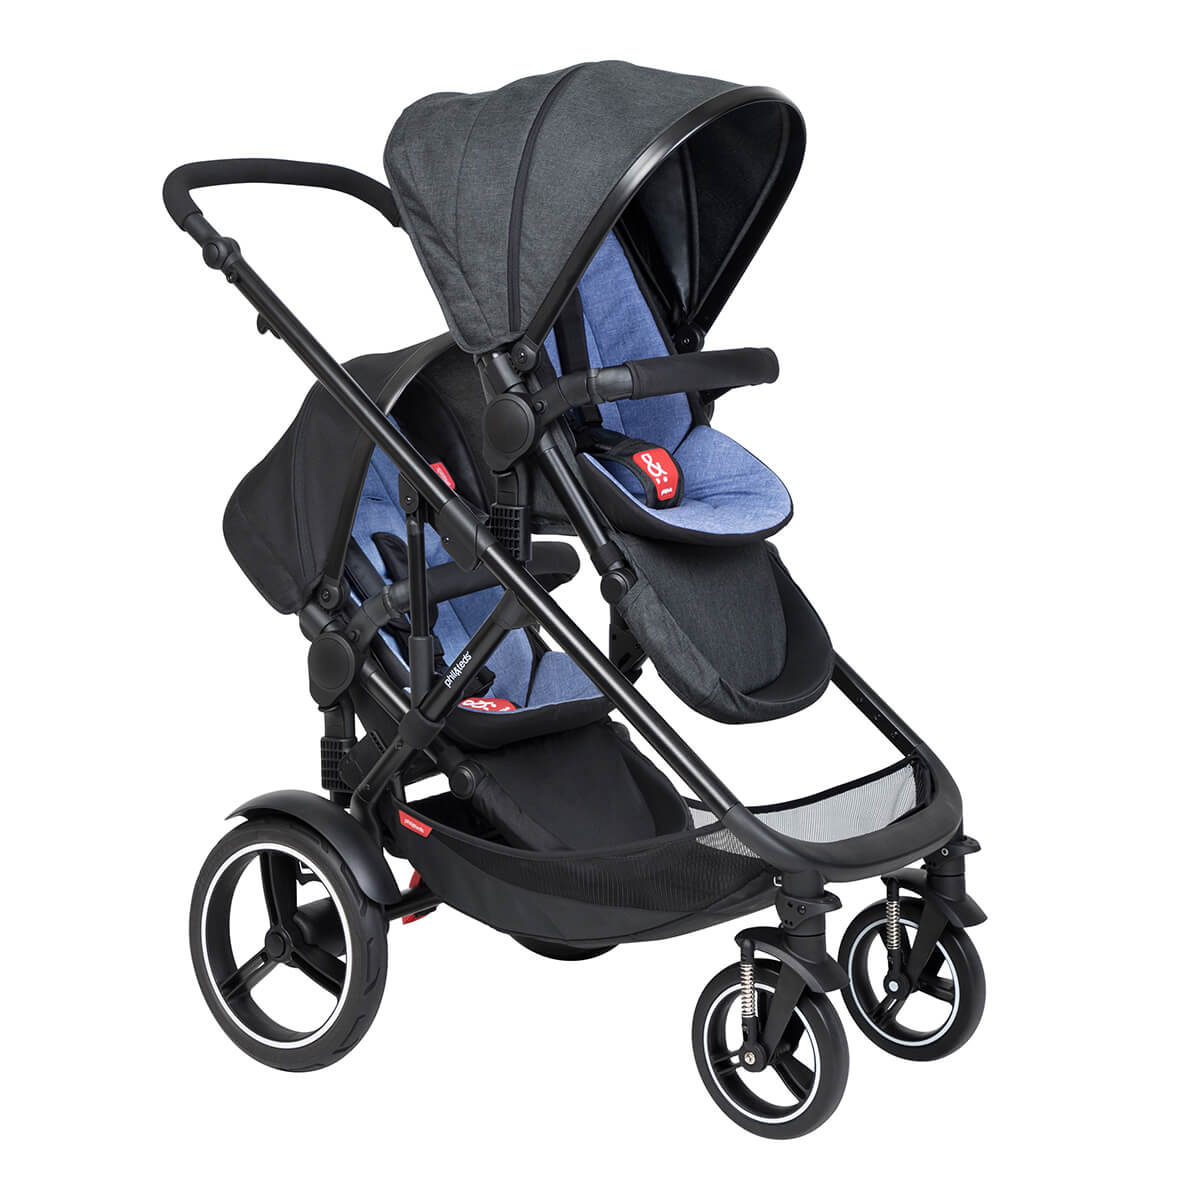 https://cdn.accentuate.io/4513464057952/19440099852472/philteds-voyager-inline-buggy-with-double-kit-in-rear-in-sky-blue-colour-v1626486728705.jpg?1200x1200